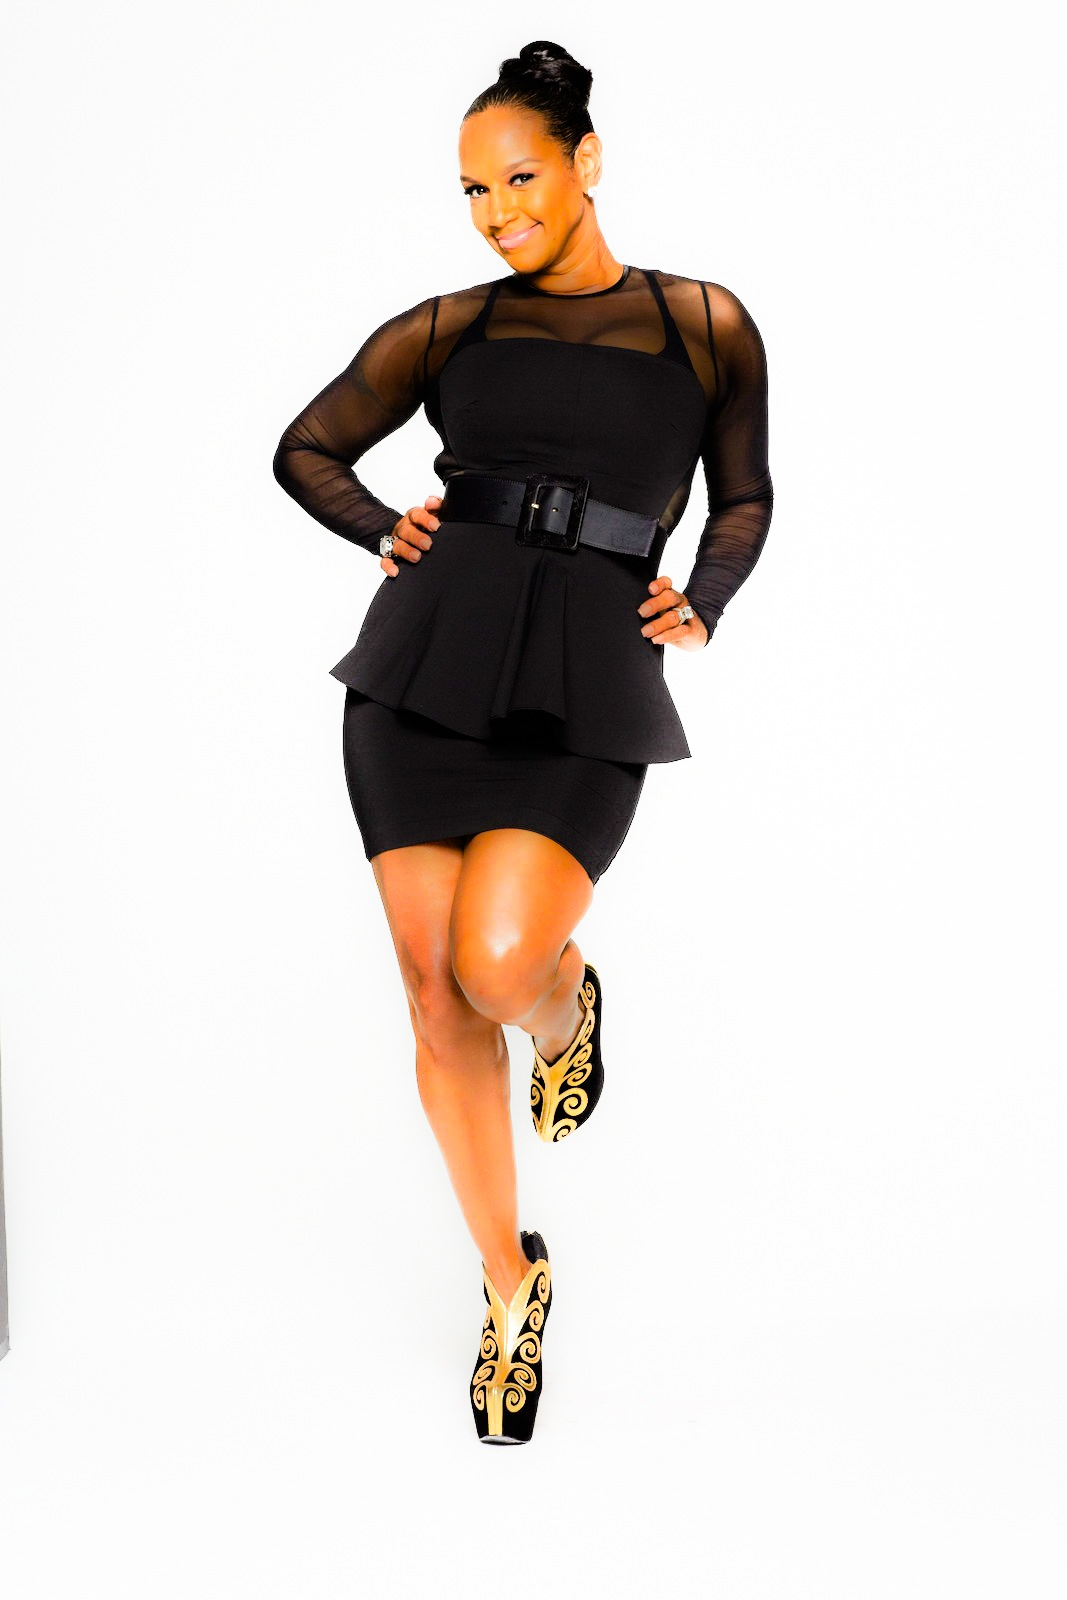 VH1's Basketball Wives LA star and Fashion Designer Jackie Christie to Launch Signature Footwear ...